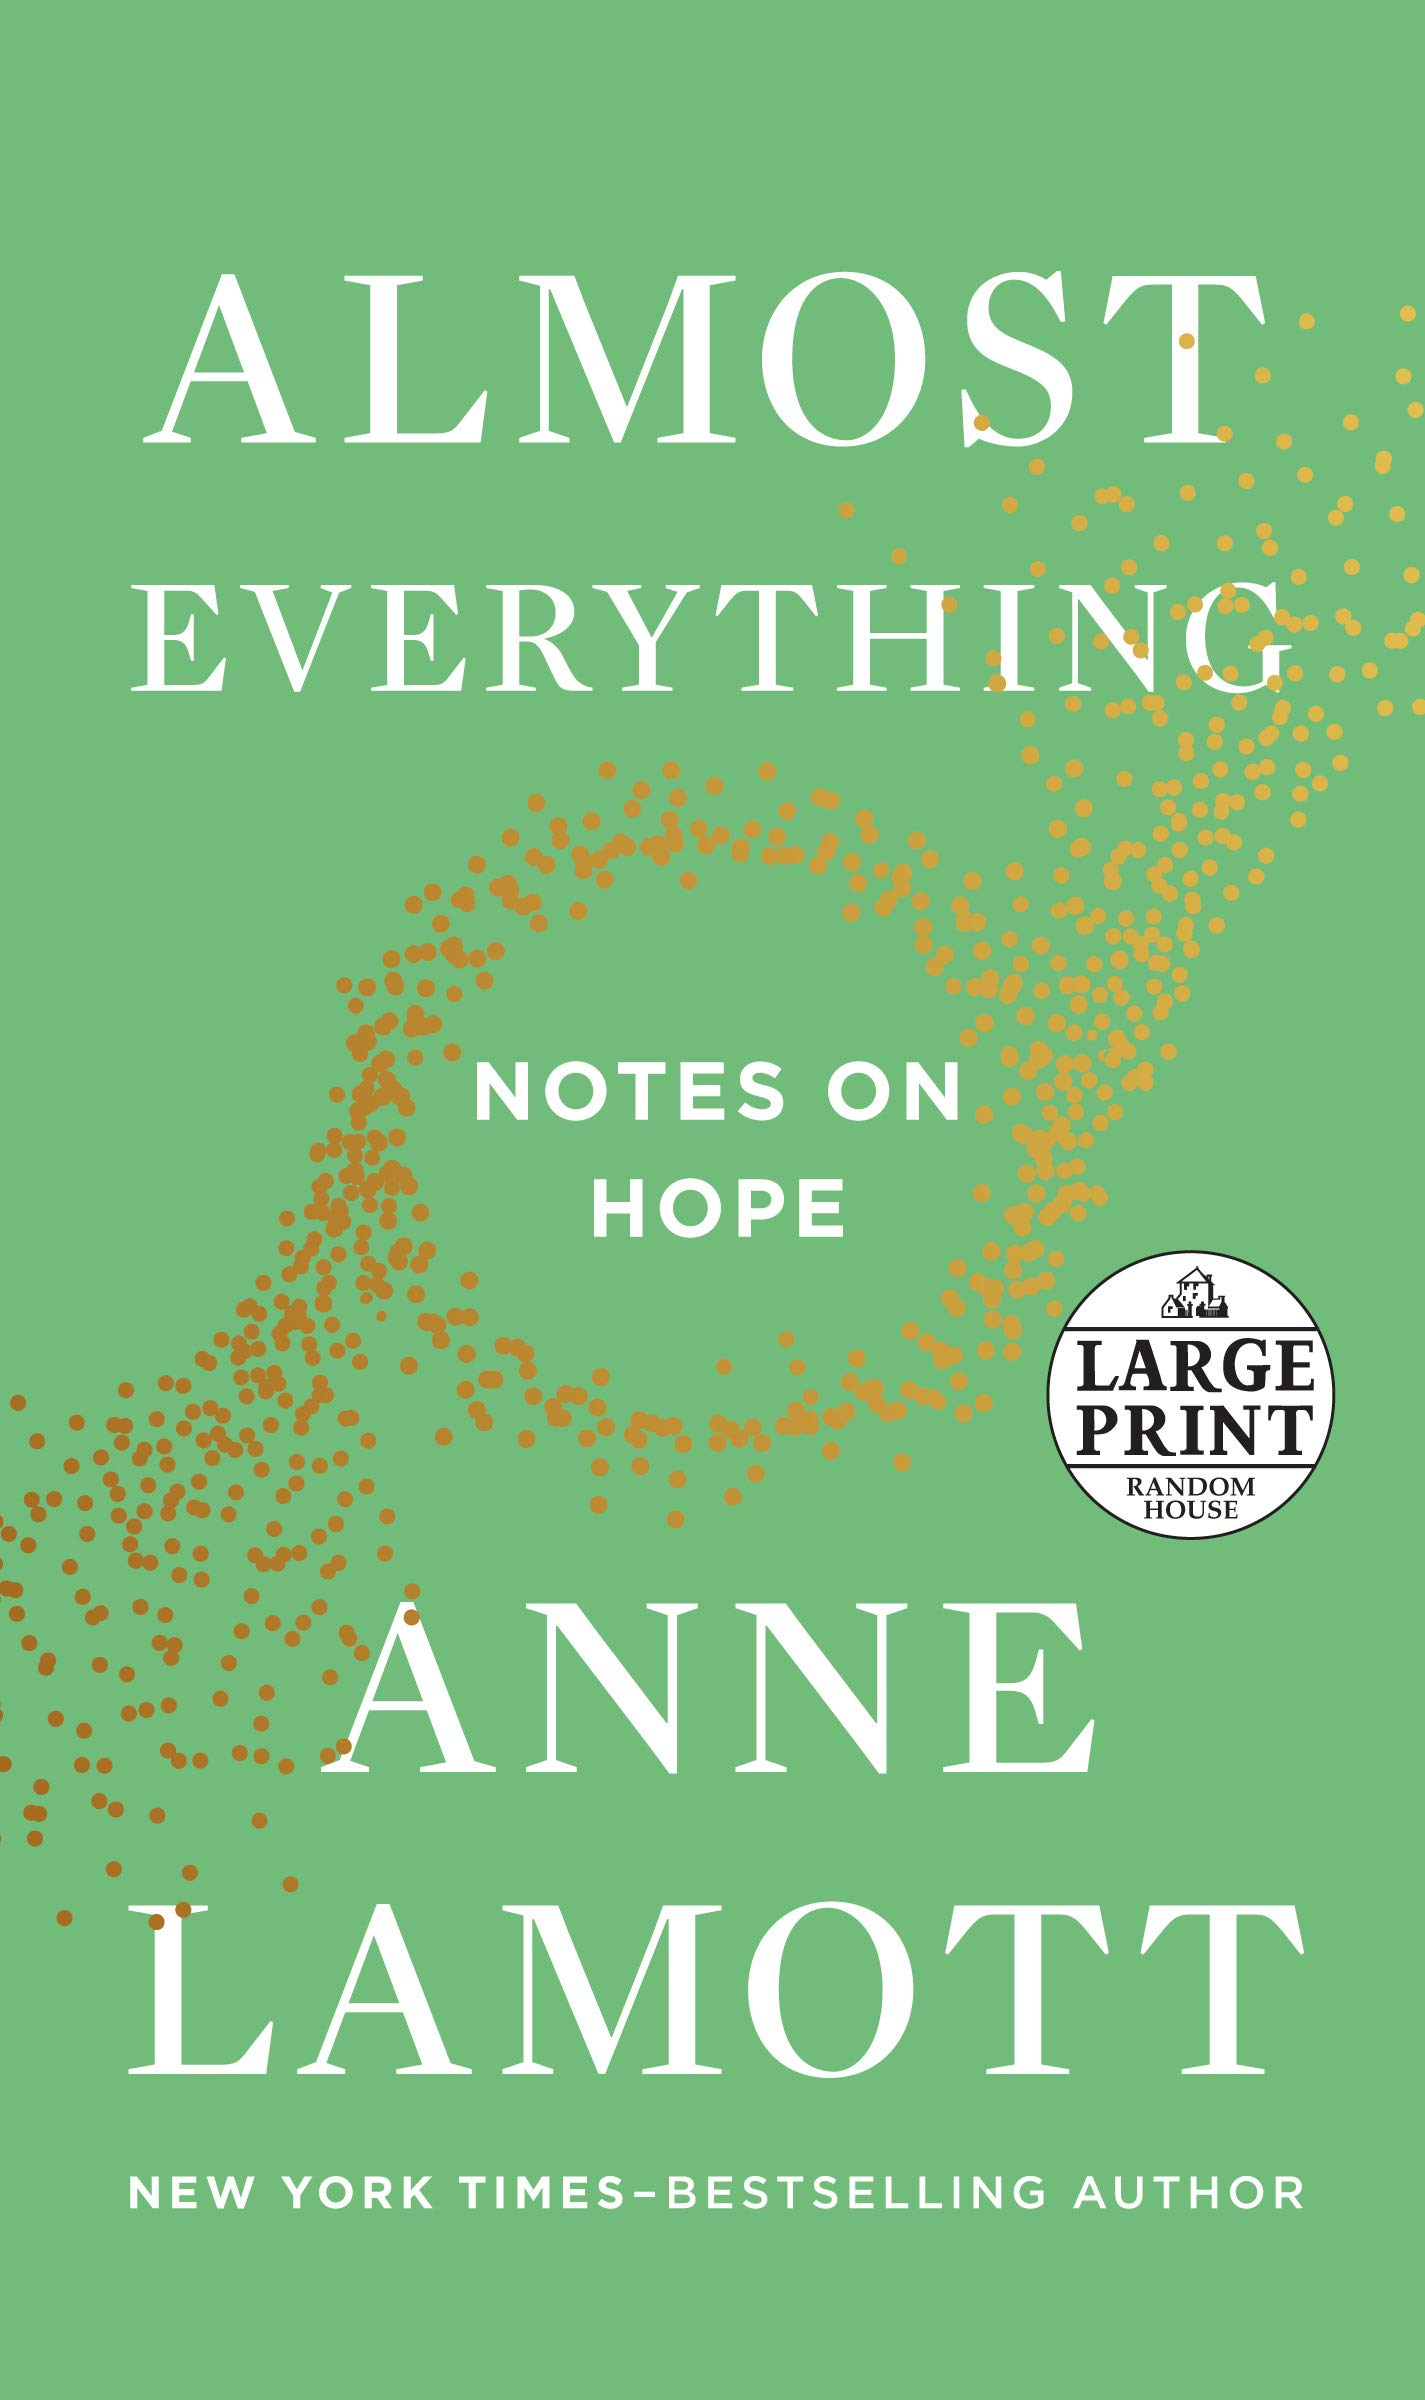 Almost Everything: Notes on Hope Paperback – Large Print, October 16, 2018 Anne Lamott Random House Large Print 198482760X Hope - Religious aspects